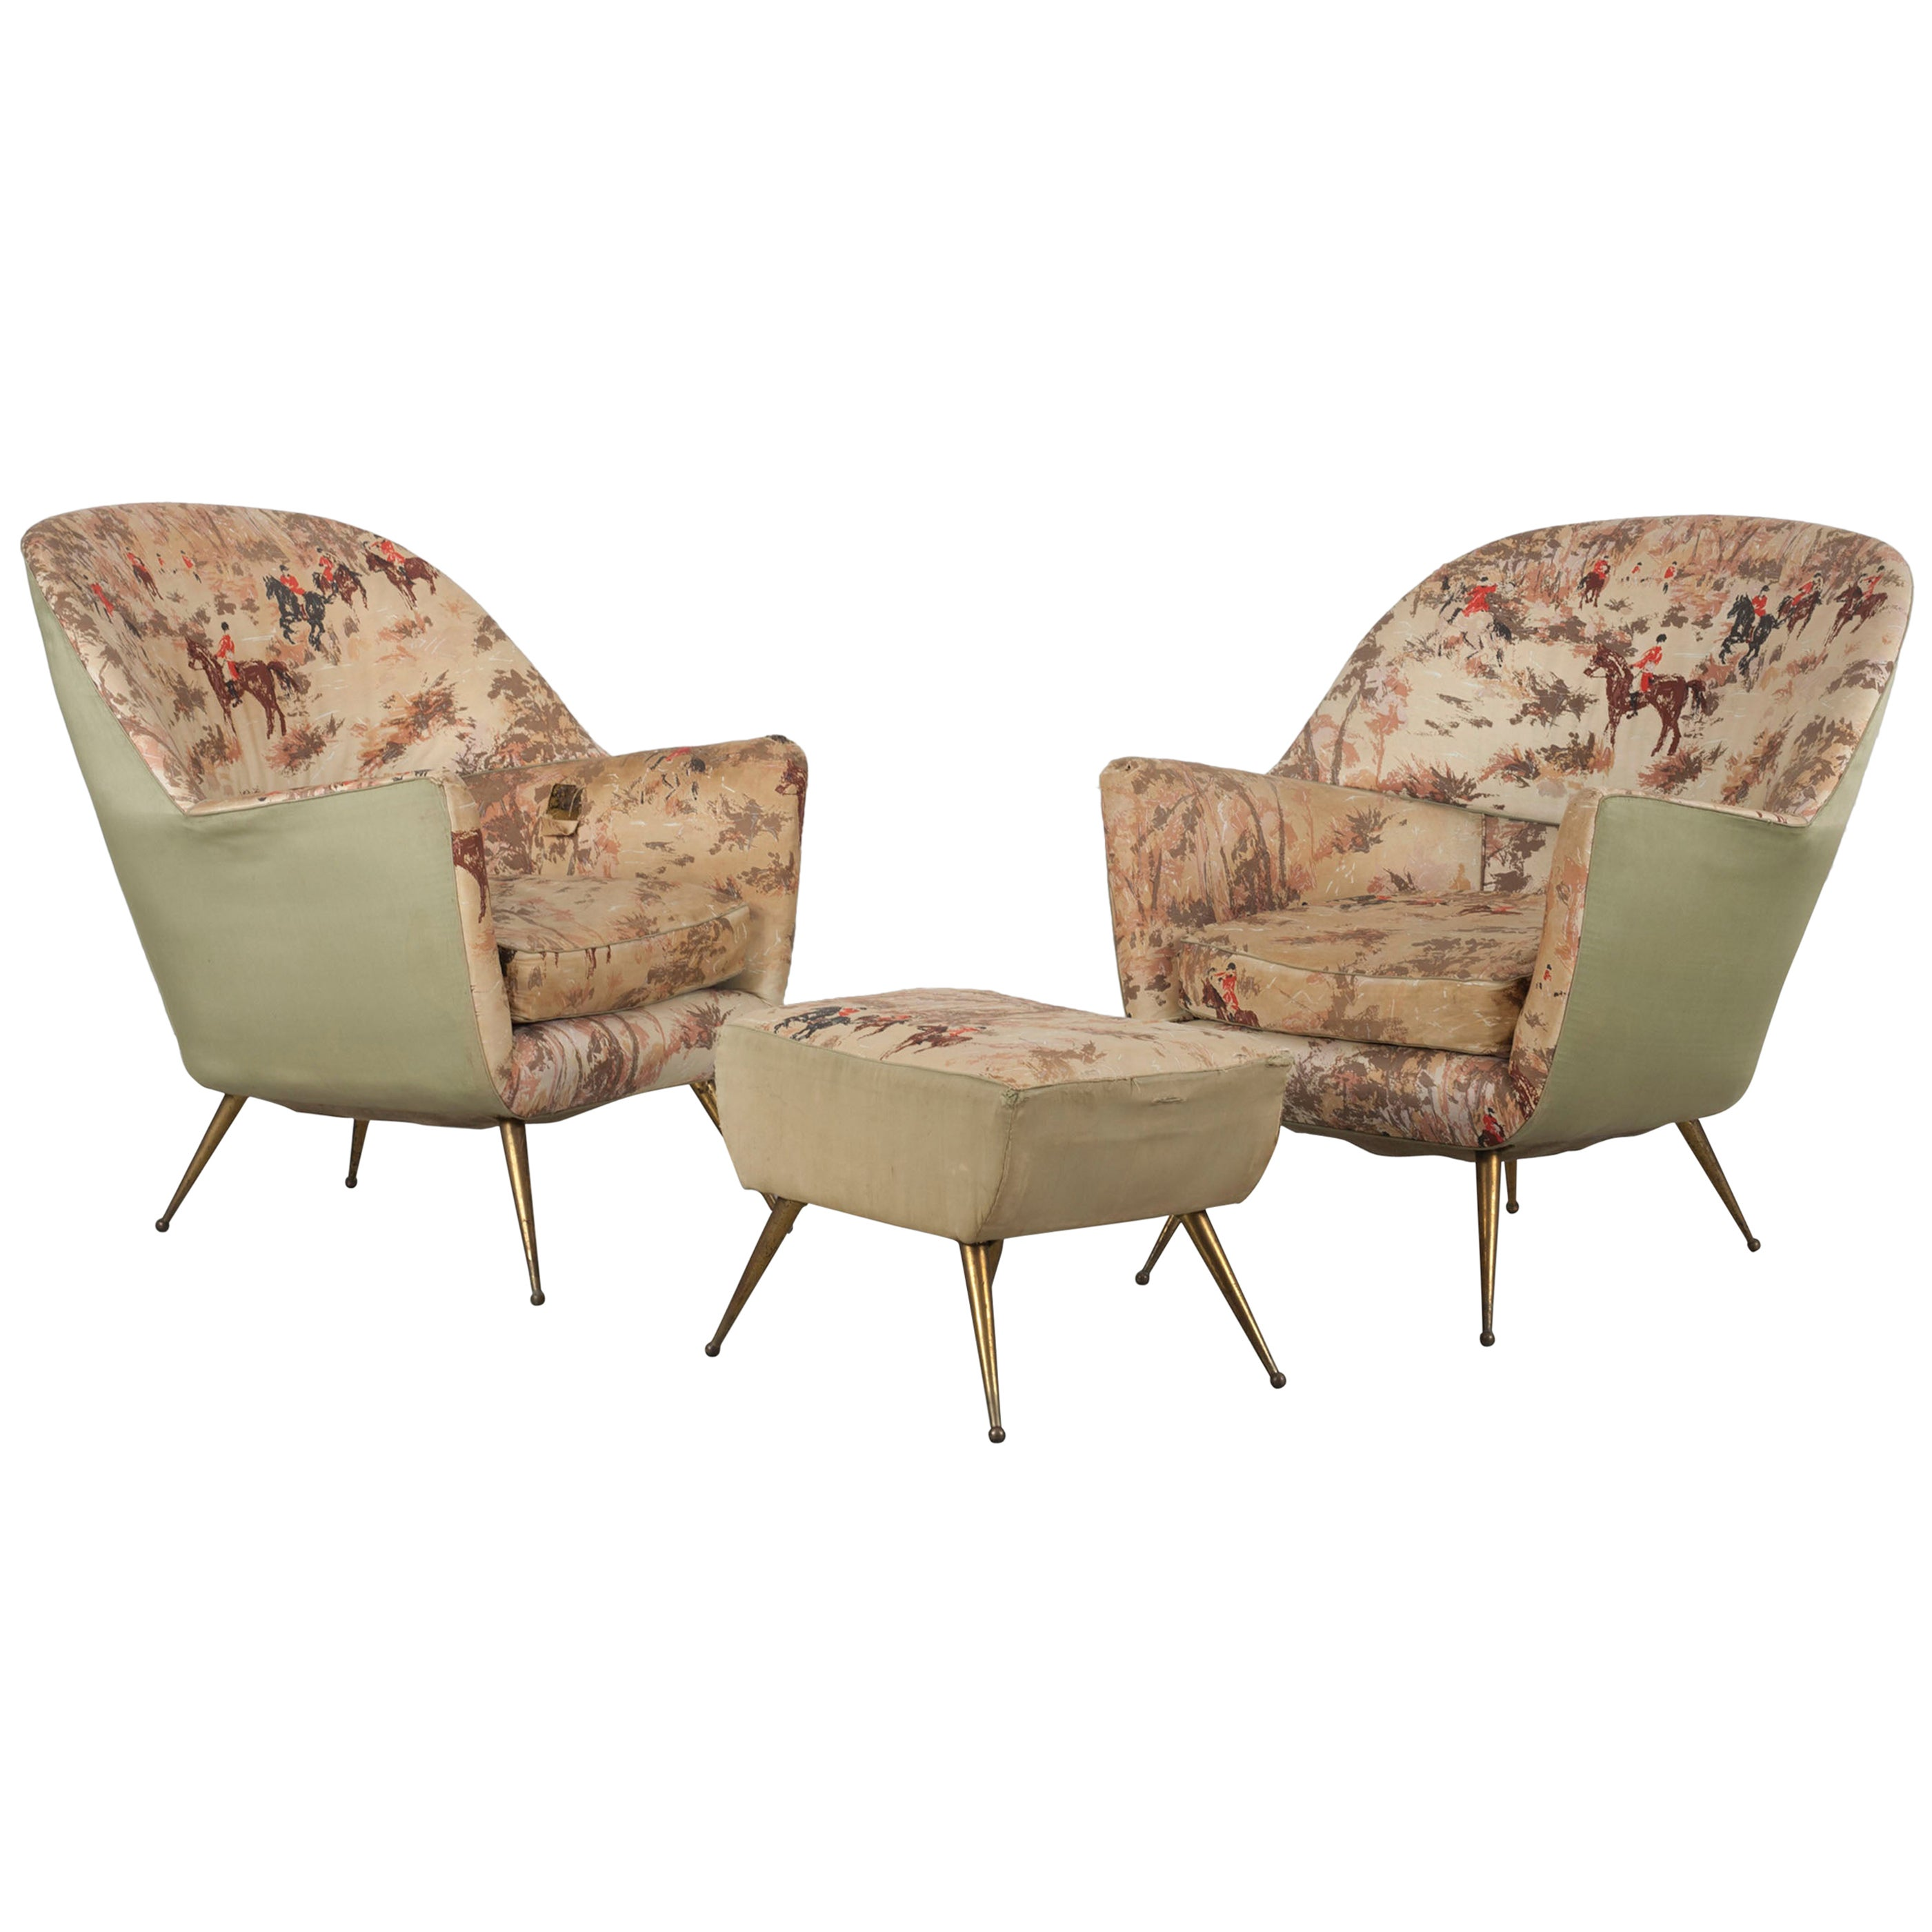 Italian Pair of Armchairs with Brass Legs and a Footrest, ISA Bergamo, 1950s